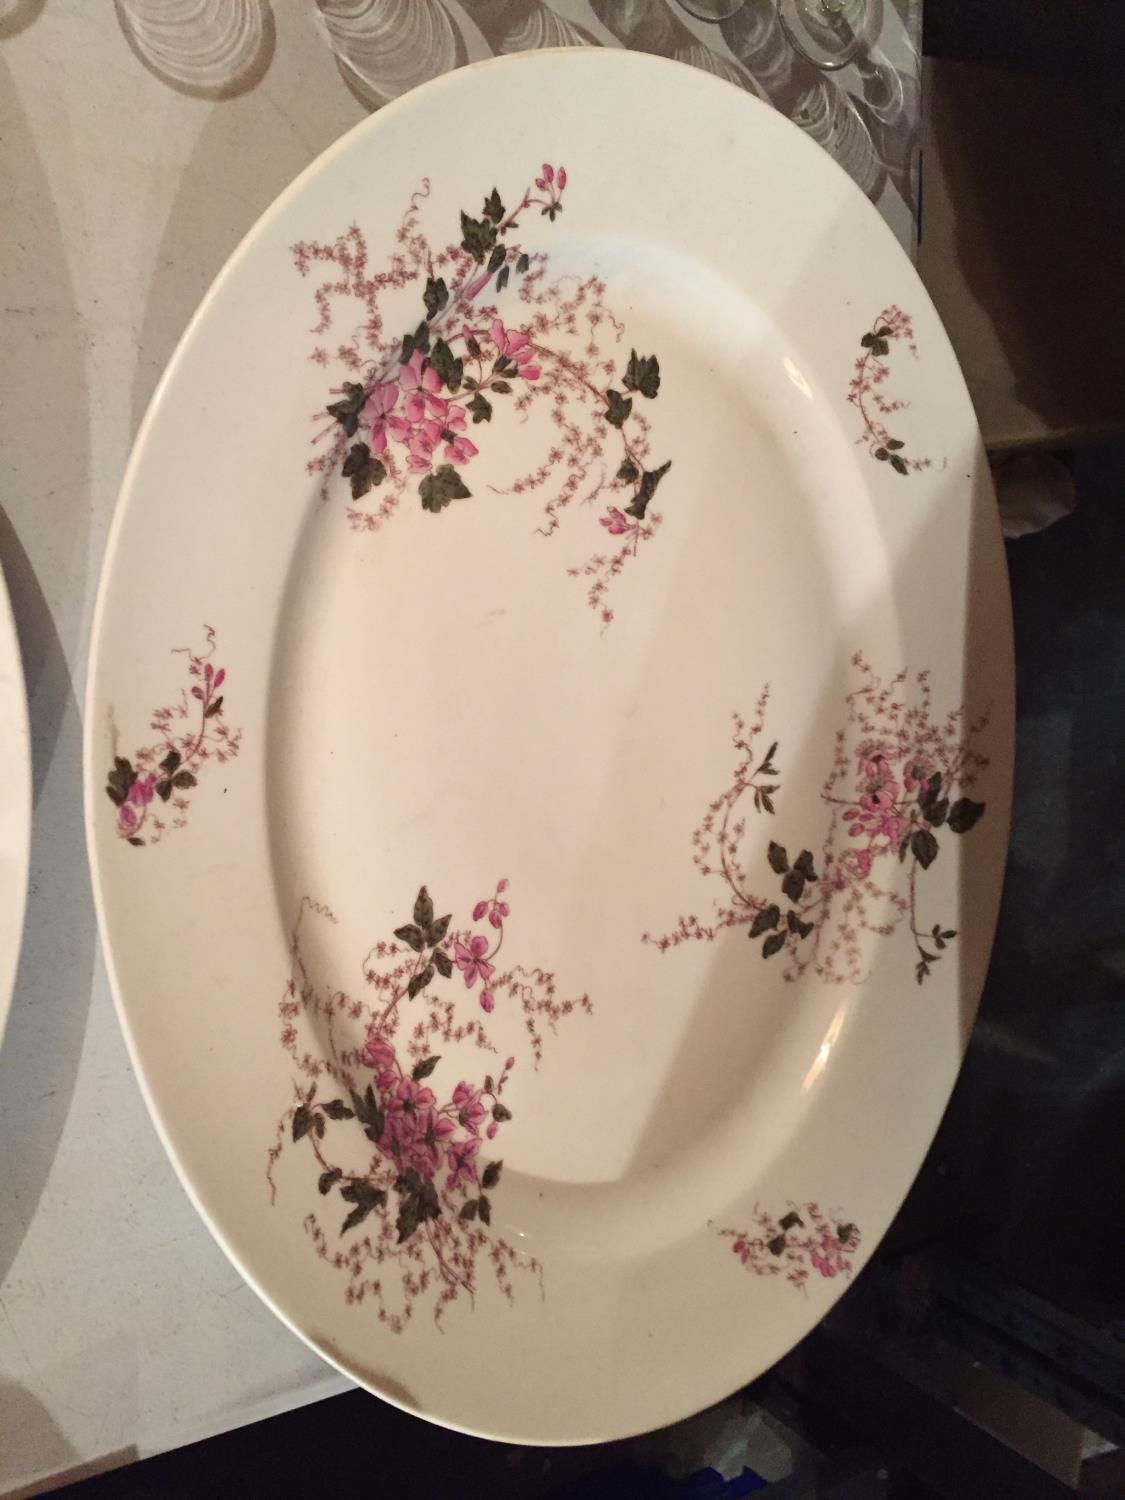 TWO LARGE HEAVY CERAMIC MEAT PLATTERS WITH A DELICATE PINK FLOWER DESIGN - Image 6 of 6